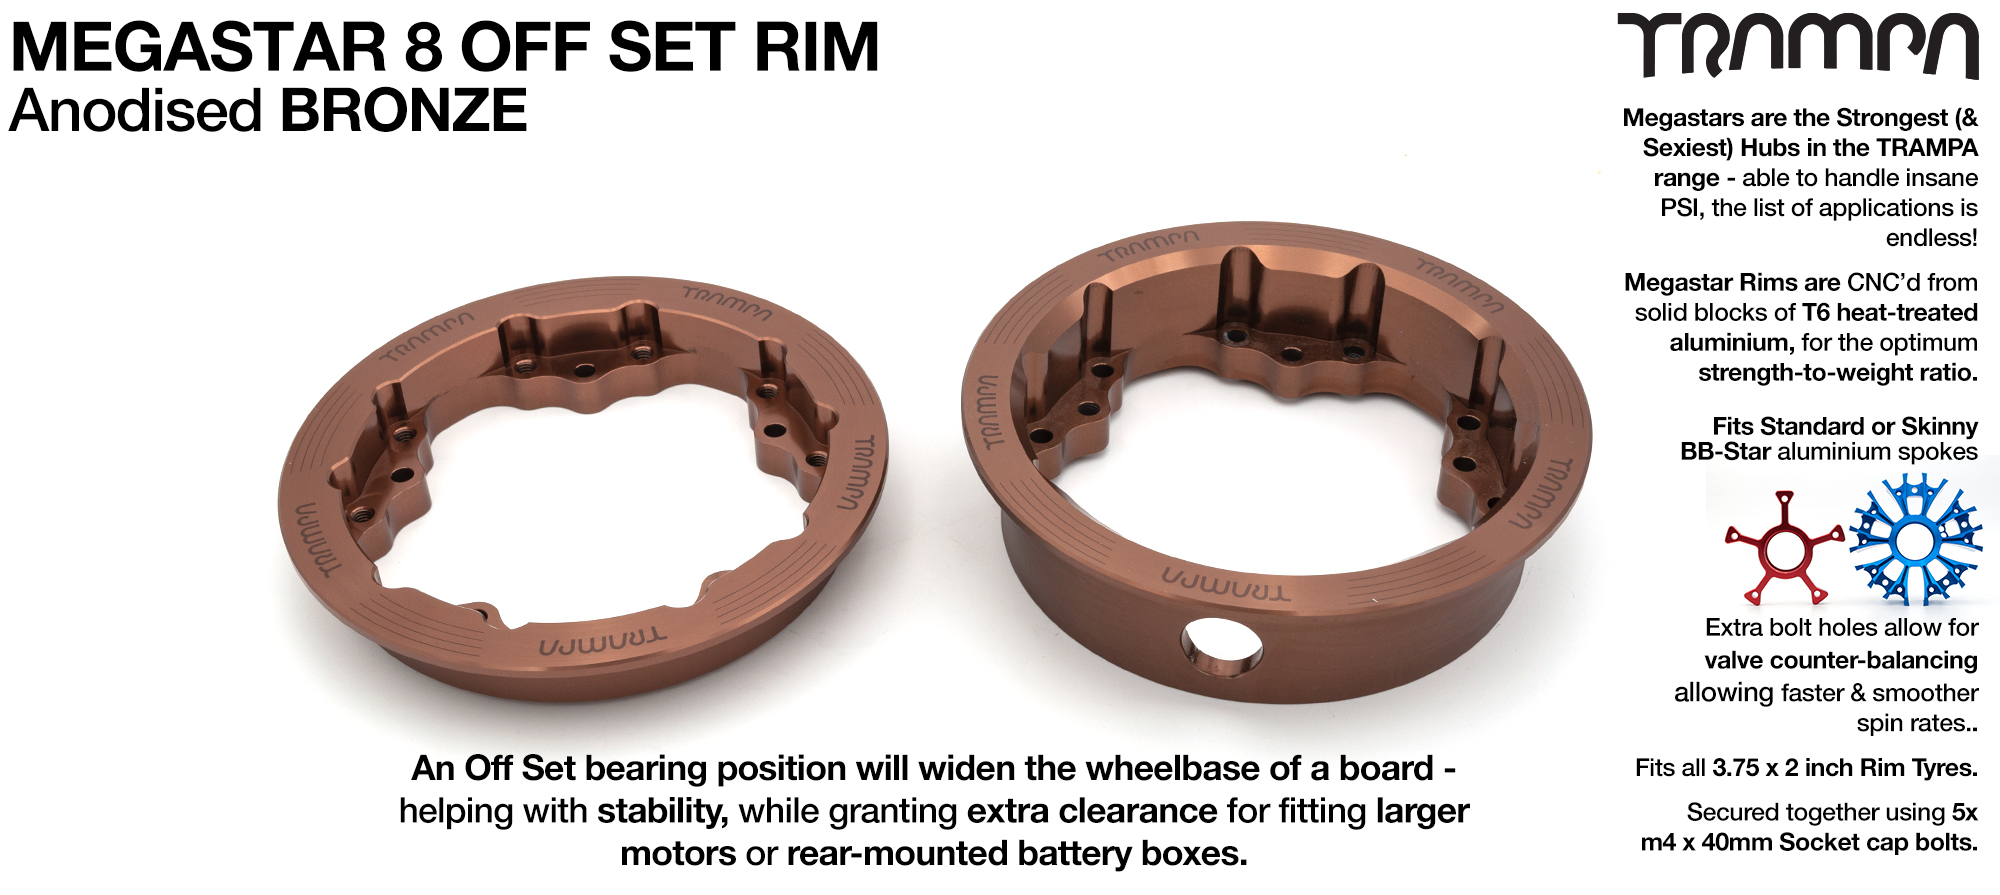 8 Inch MEGASTAR Rim OFF SET - Anodised BRONZE - Pro OFF-SET Superstars will widen your wheel base by 15mm